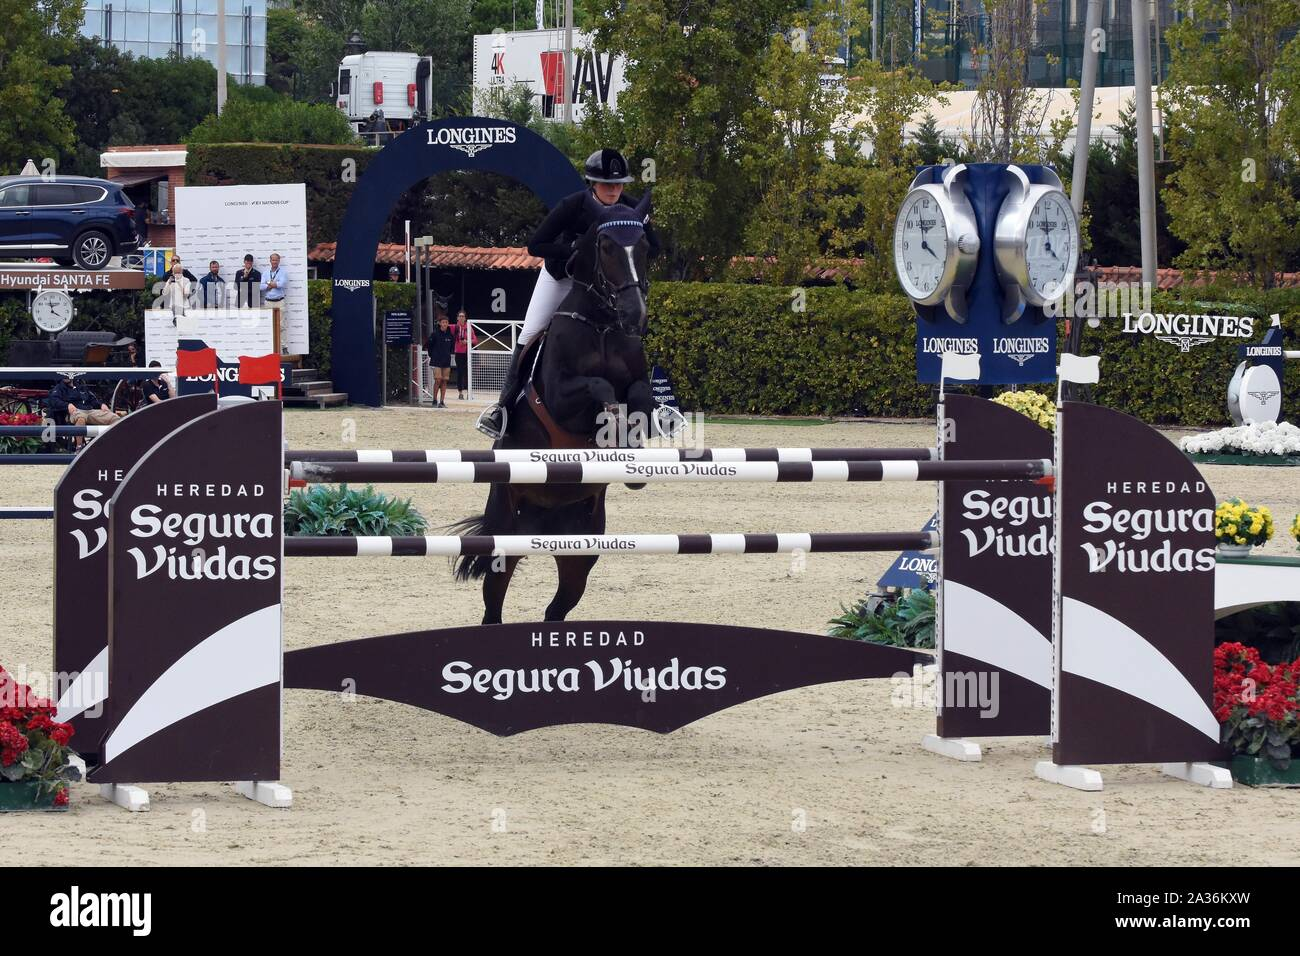 Barcelona, Spain. 05th Oct, 2019. Professional jockey from Sweden Stephanie Holman participates during the Queen's Cup - Segura Widows Trophy Longines FEI Jumping Nations Cup Final in Barcelona. Credit: SOPA Images Limited/Alamy Live News Stock Photo